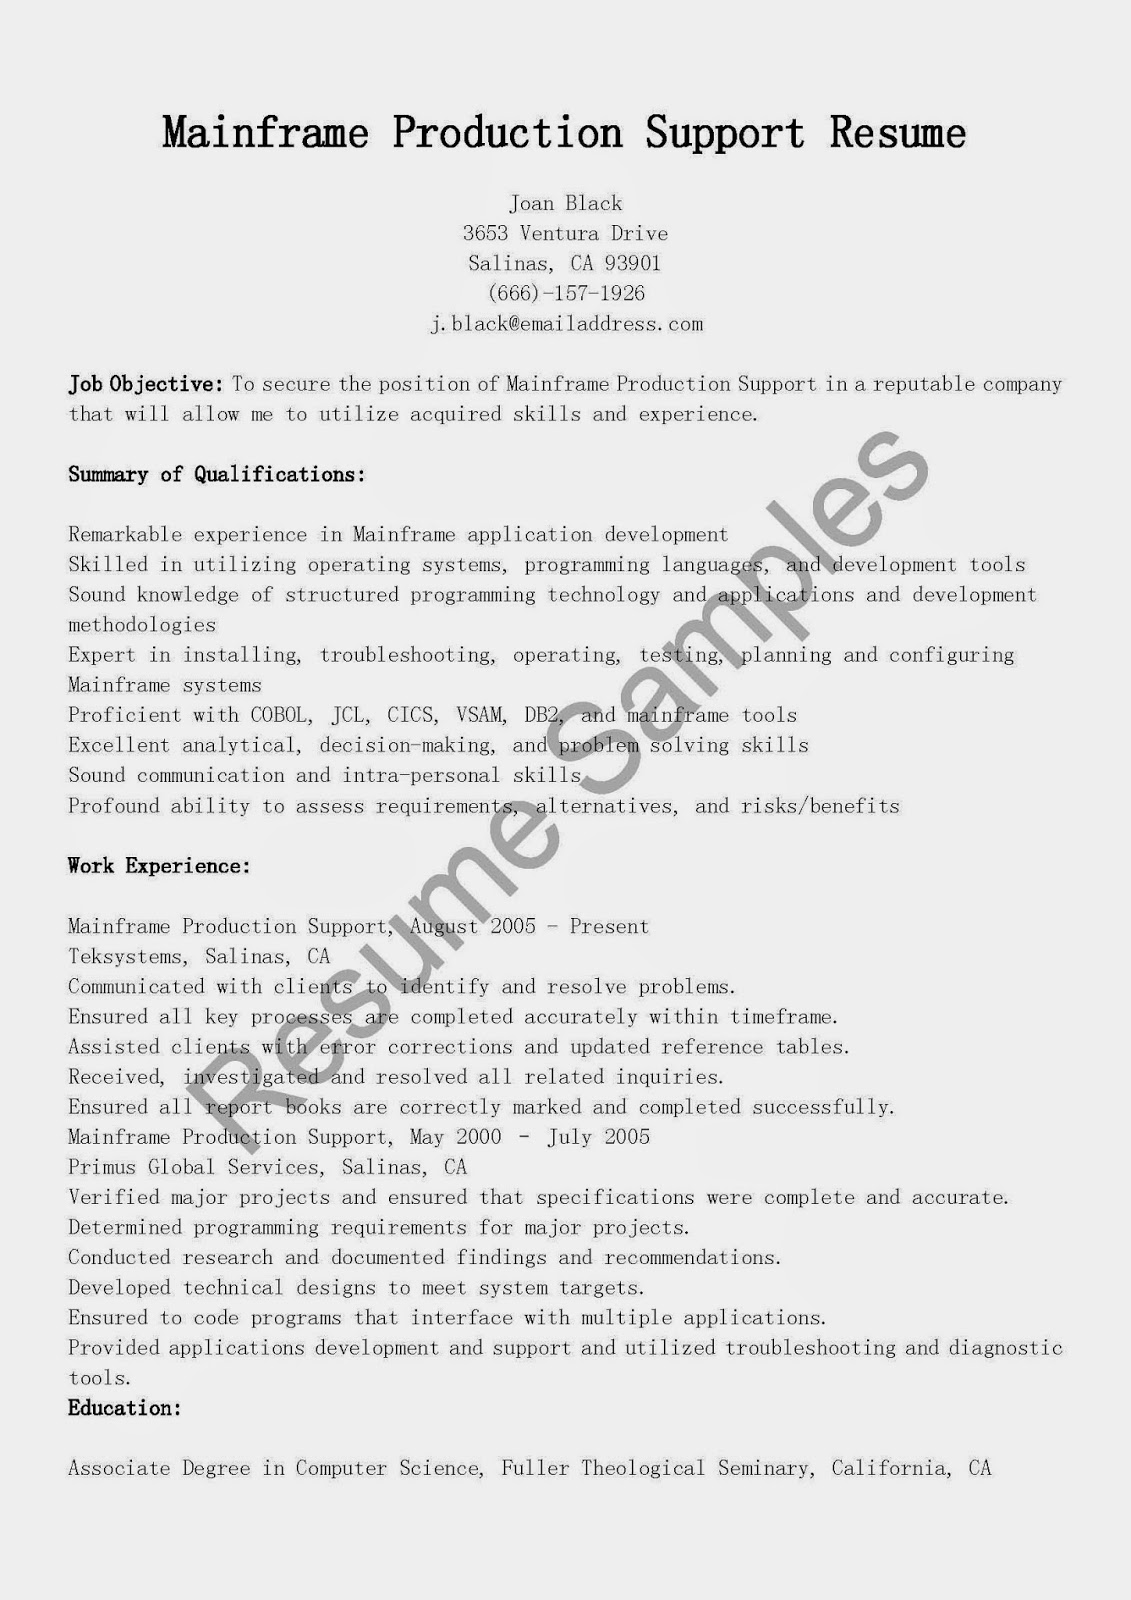 Production Support Resume Resume Samples Mainframe Production Support Resume Sample